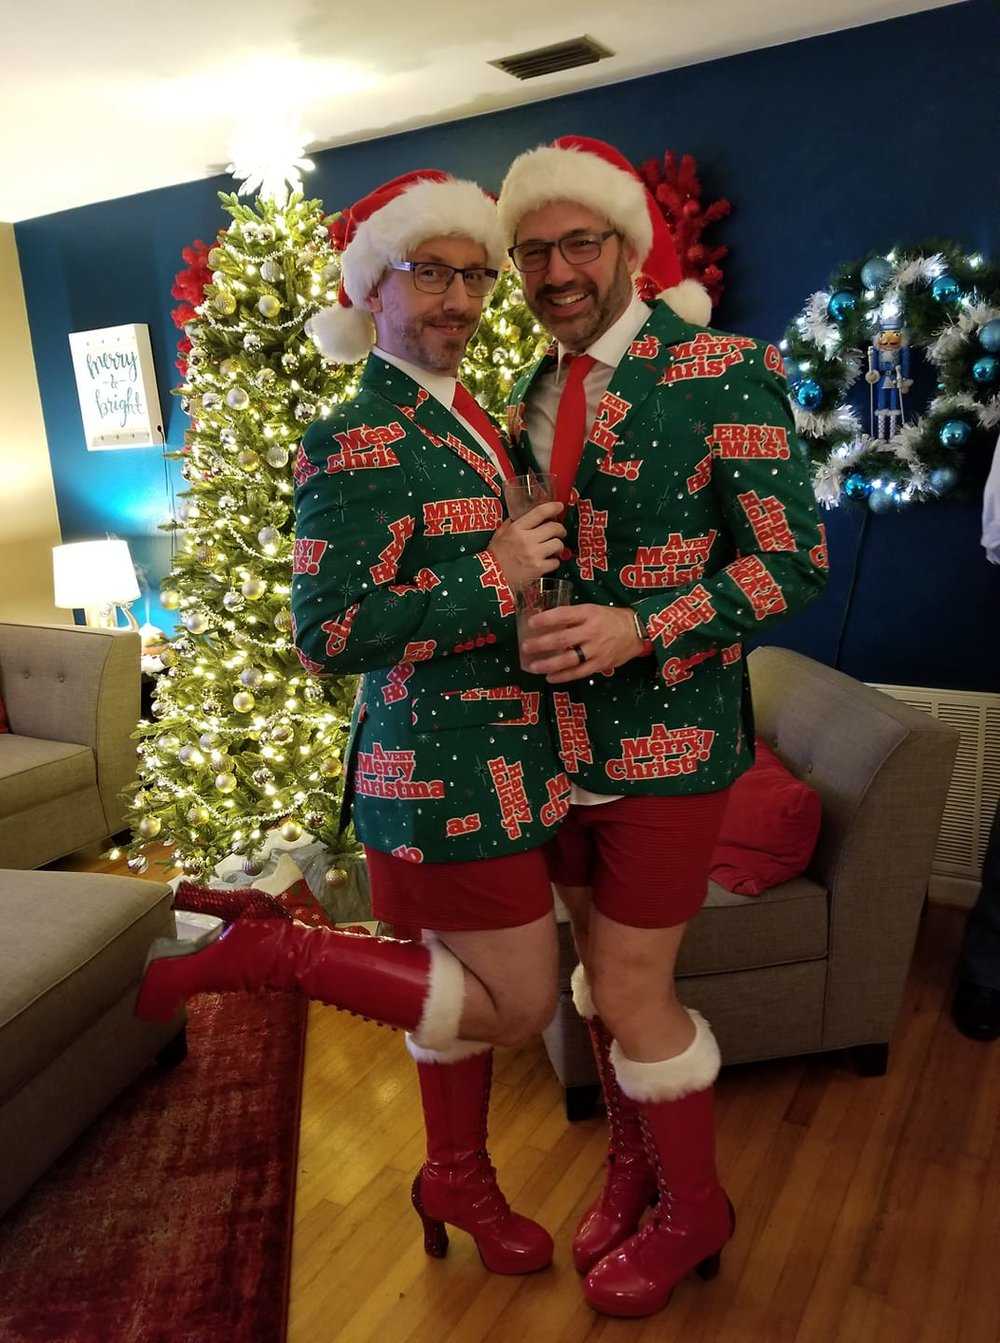 Kevin and his husband Brian at Christmas. Yes, they are THAT gay.